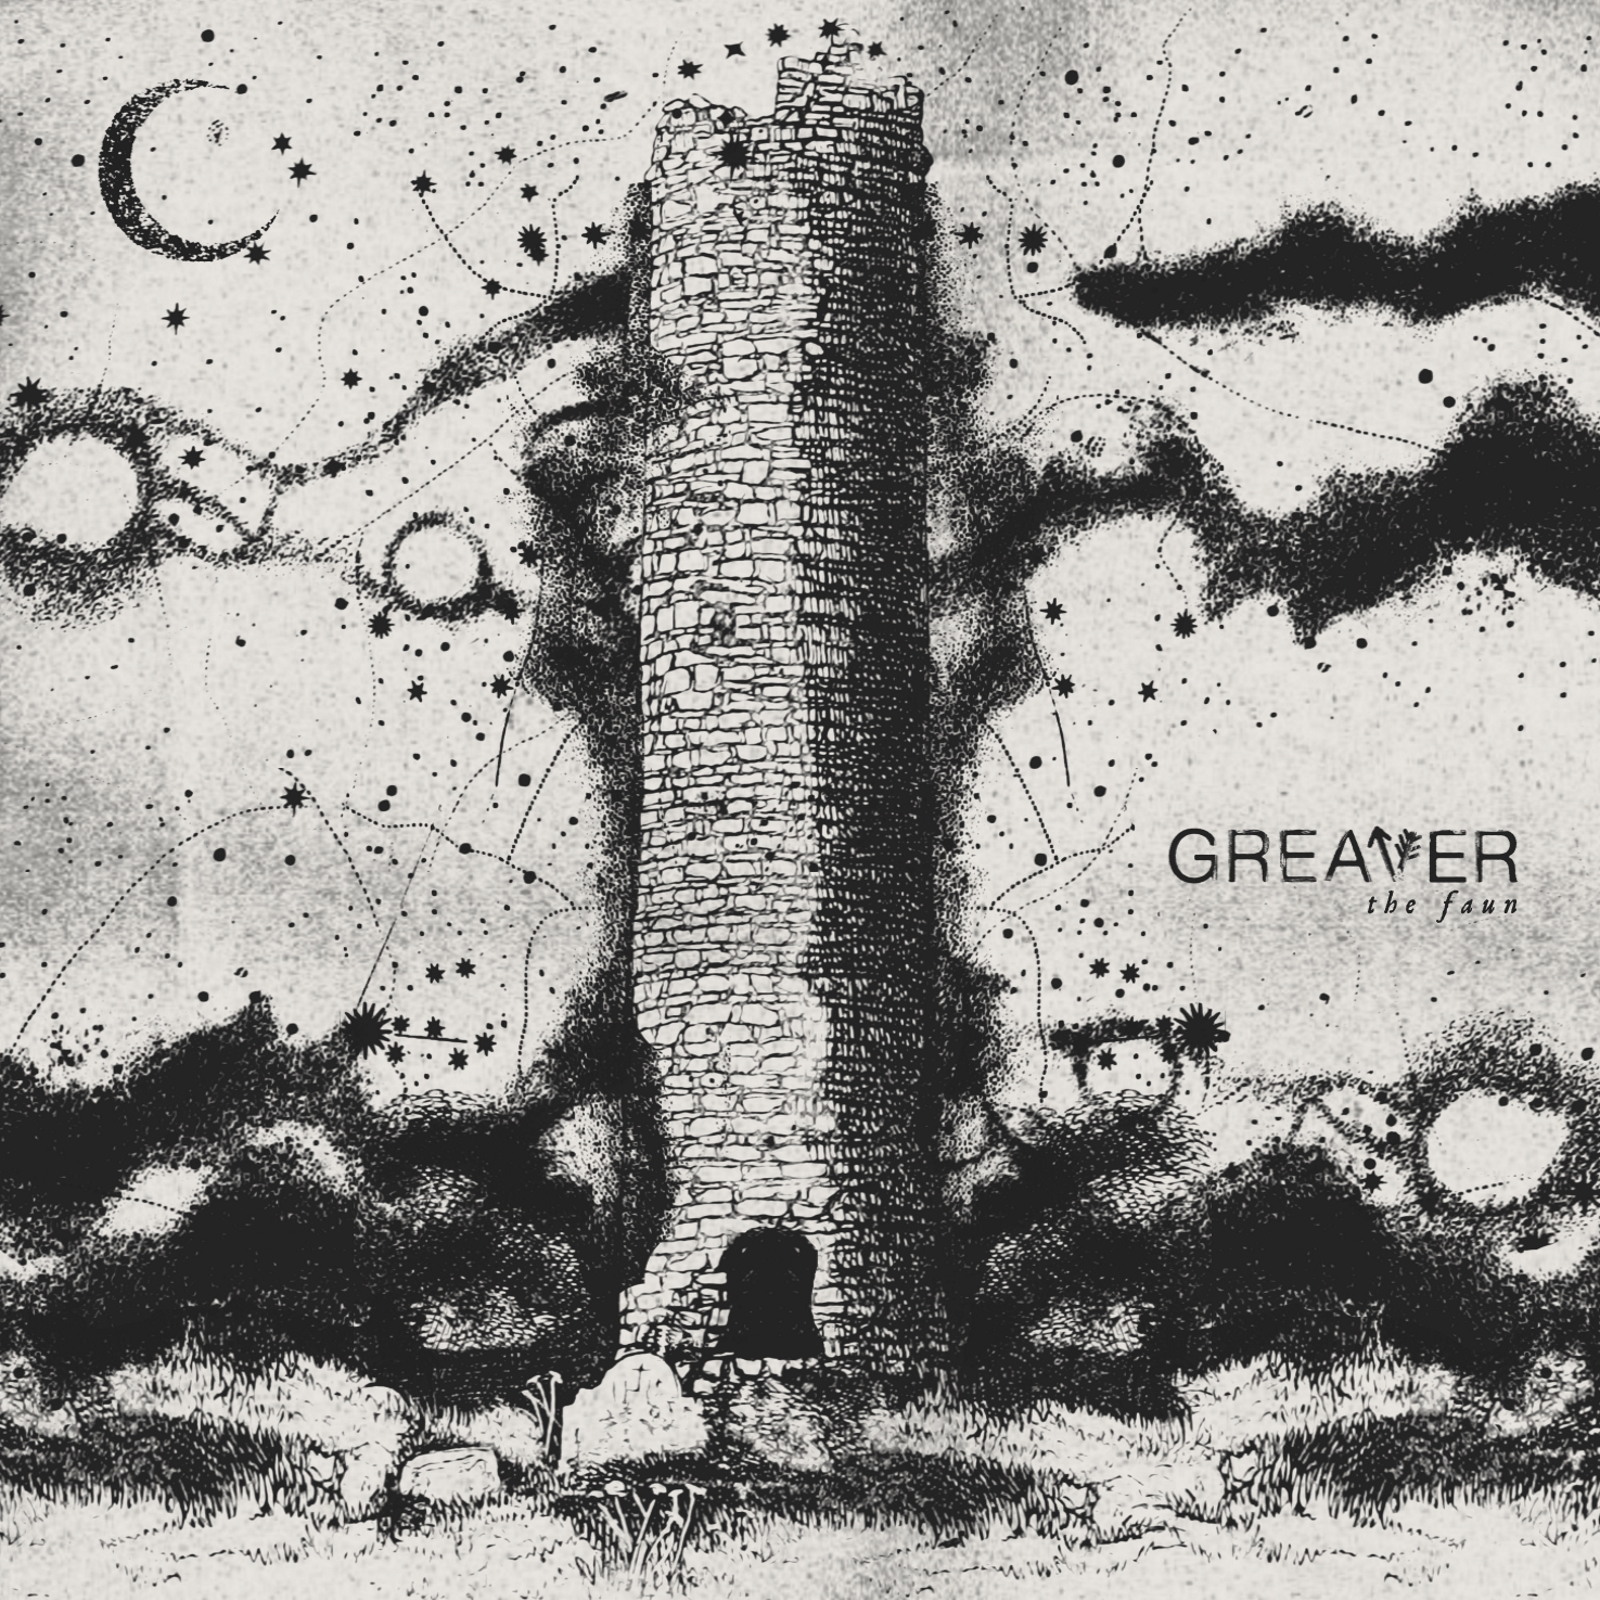 Greaver - 'The Faun'